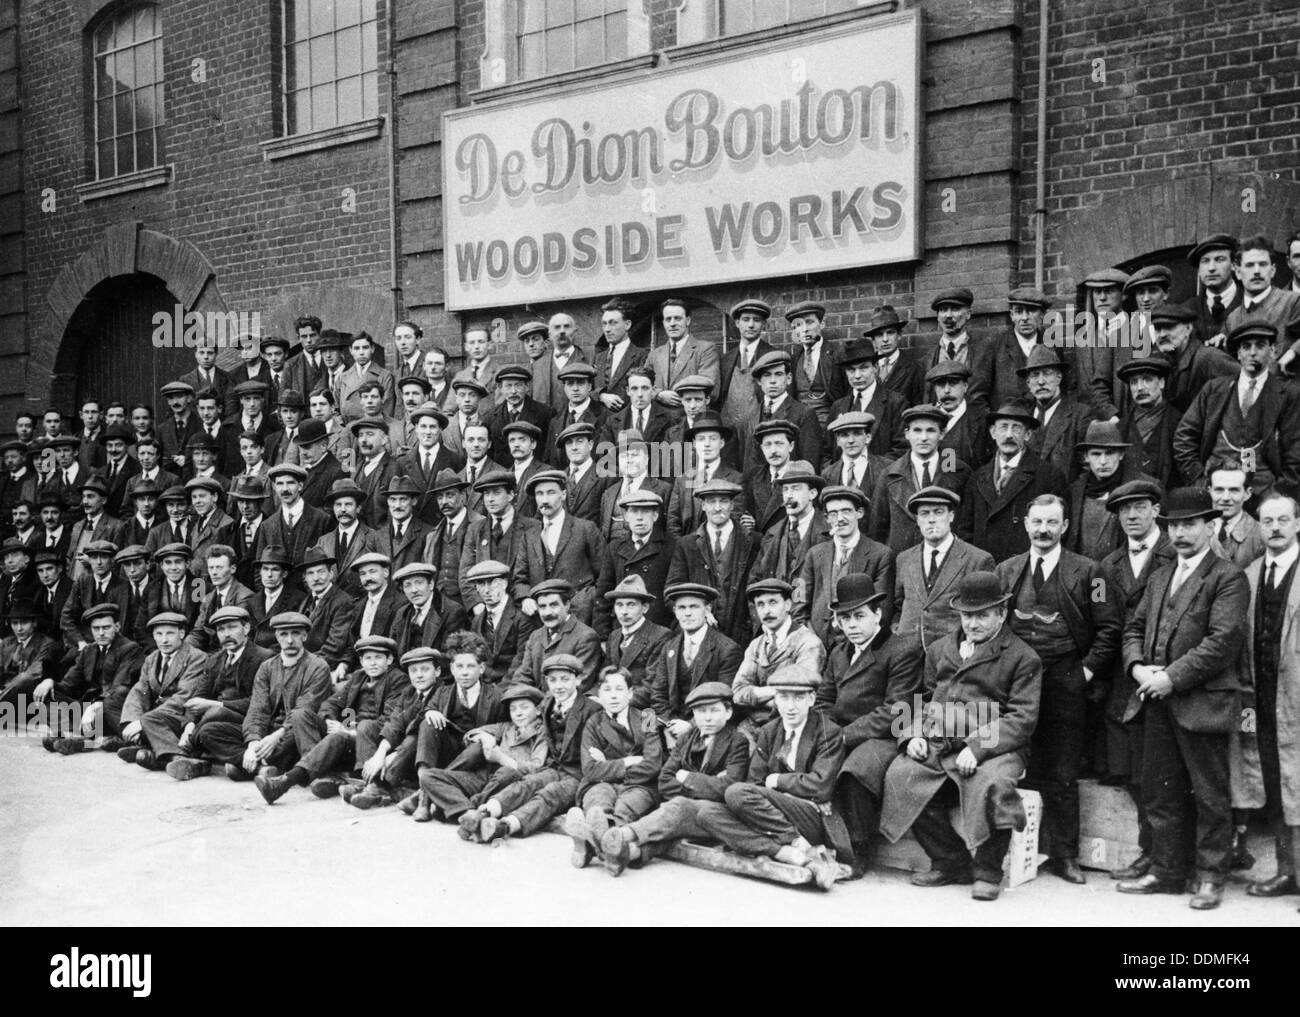 Workers outside the British De Dion Bouton works, early 1920s. - Stock Image